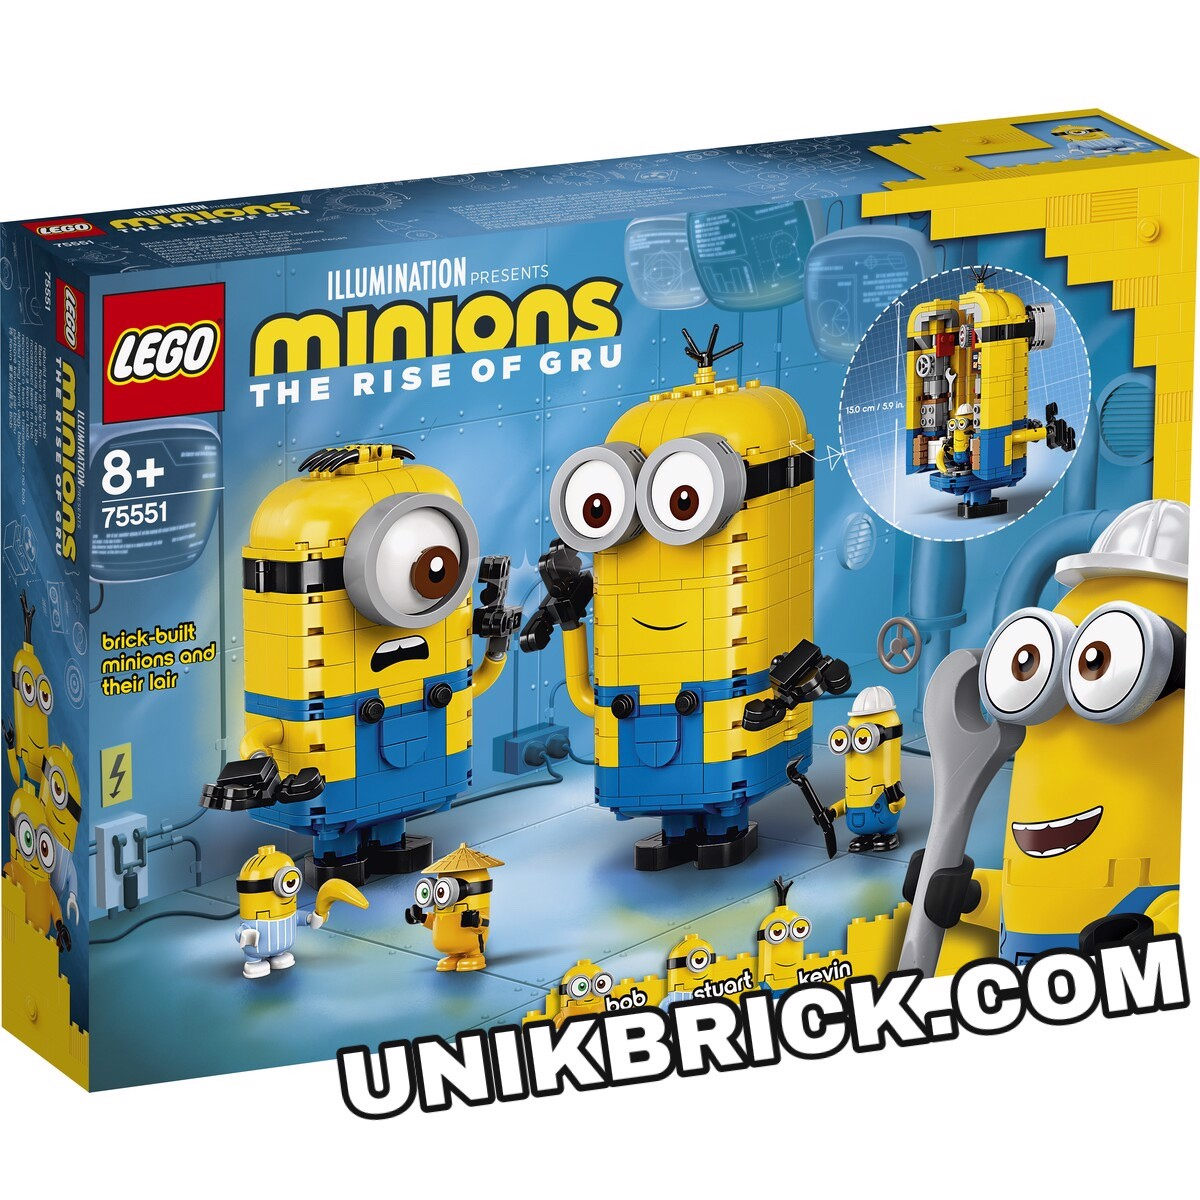 [CÓ HÀNG] LEGO 75551 Minions Brick built Minions and their Lair